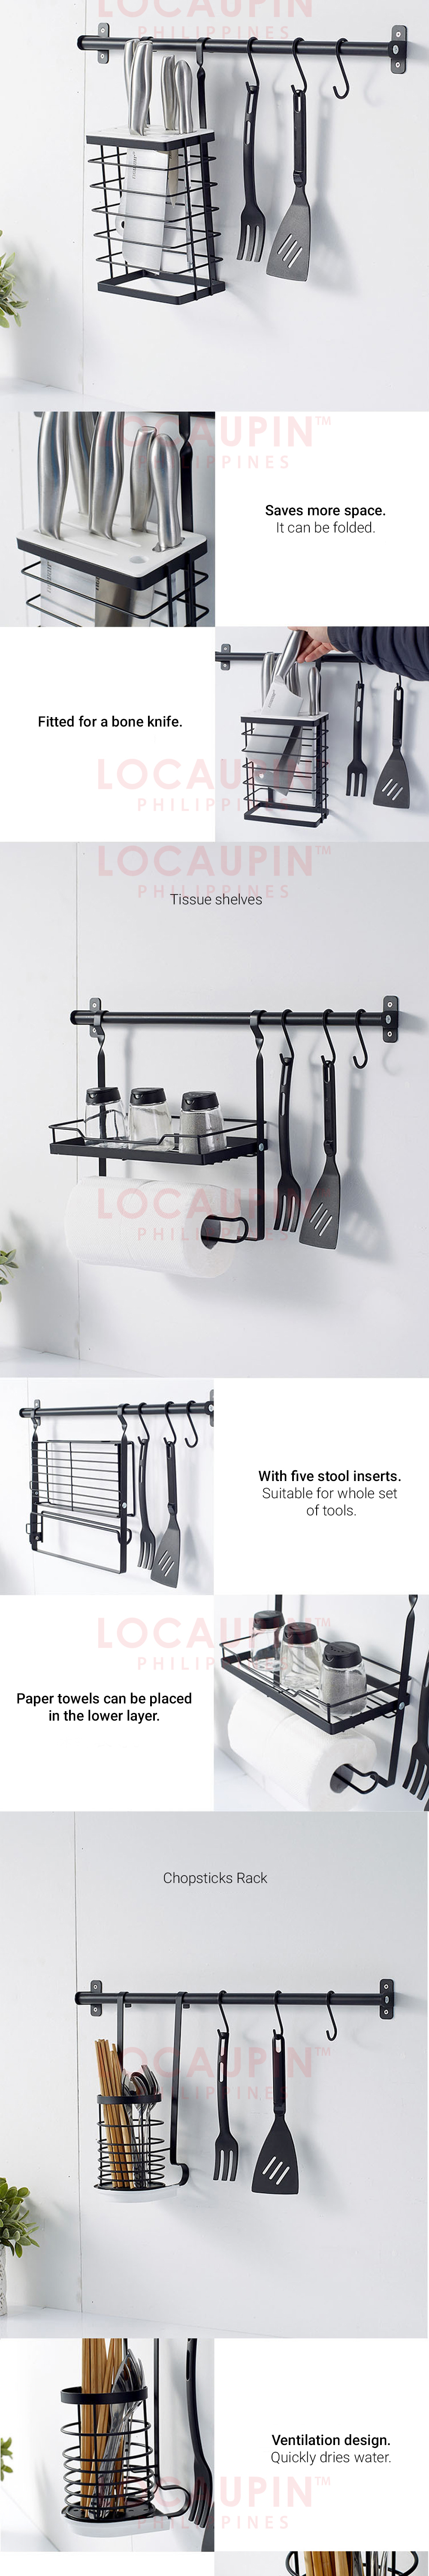 Wall Mounted Hanging Holder Kitchen